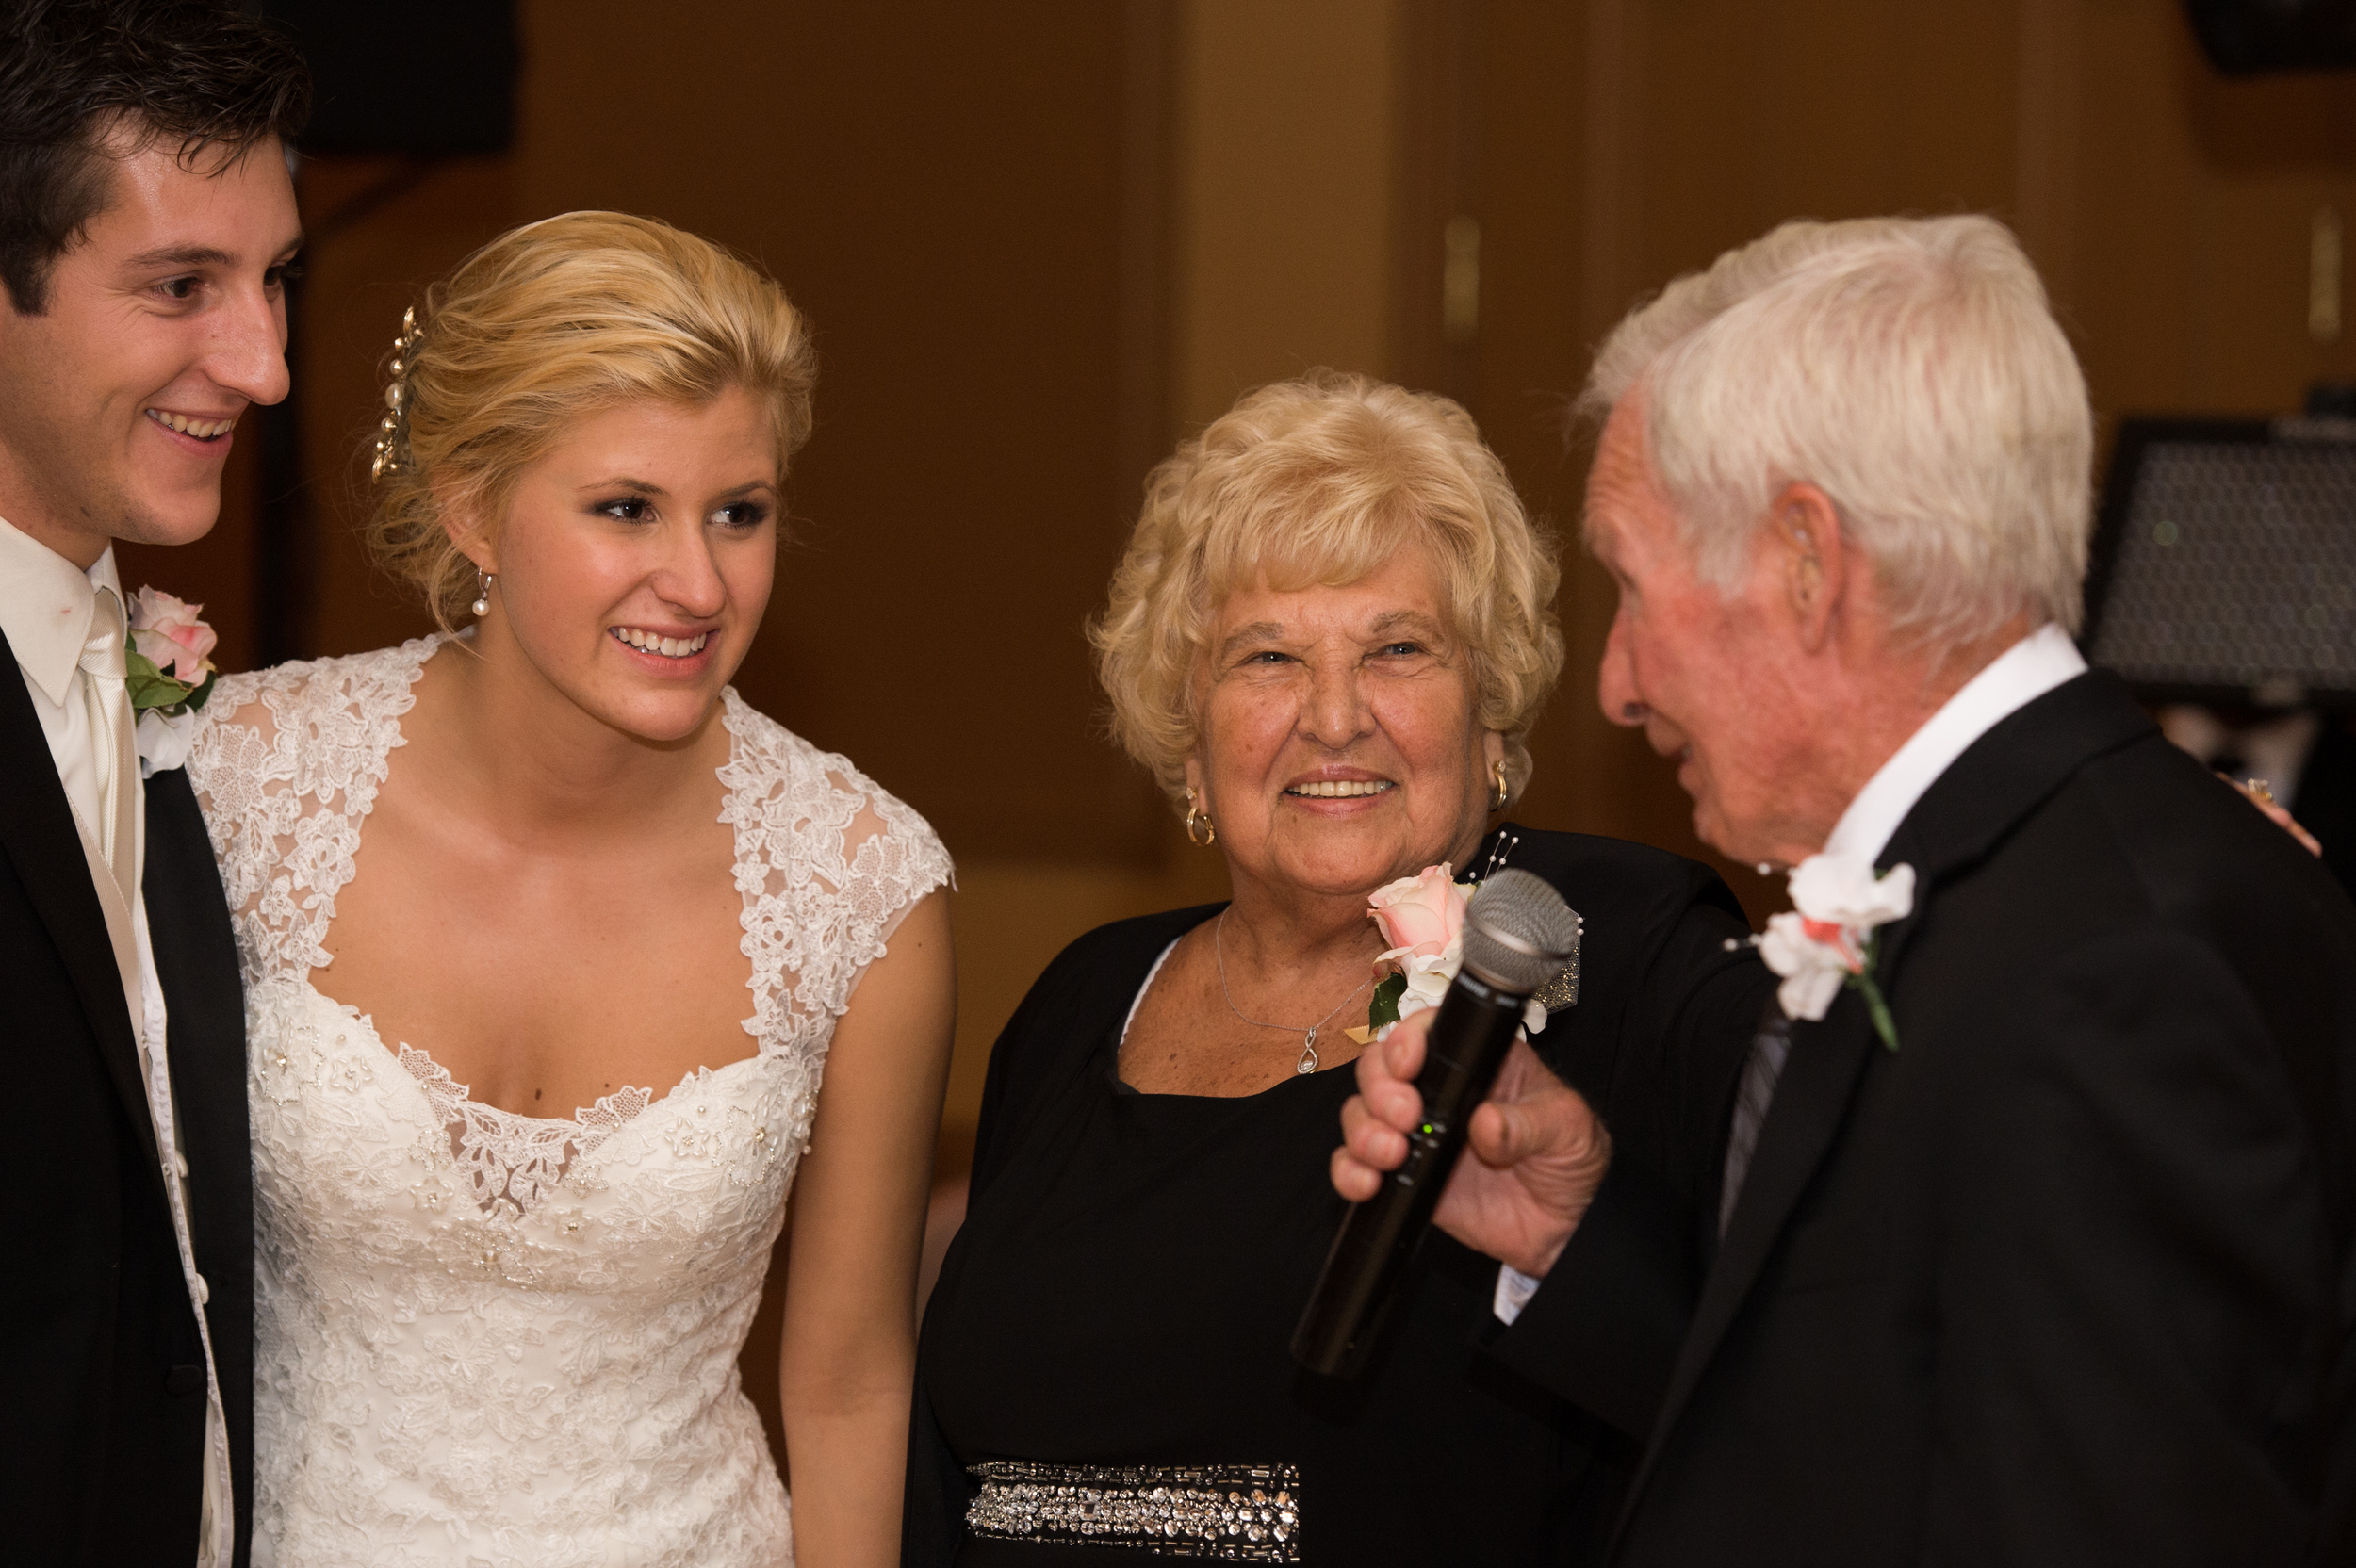 Married for a few hours and married for 63 years!